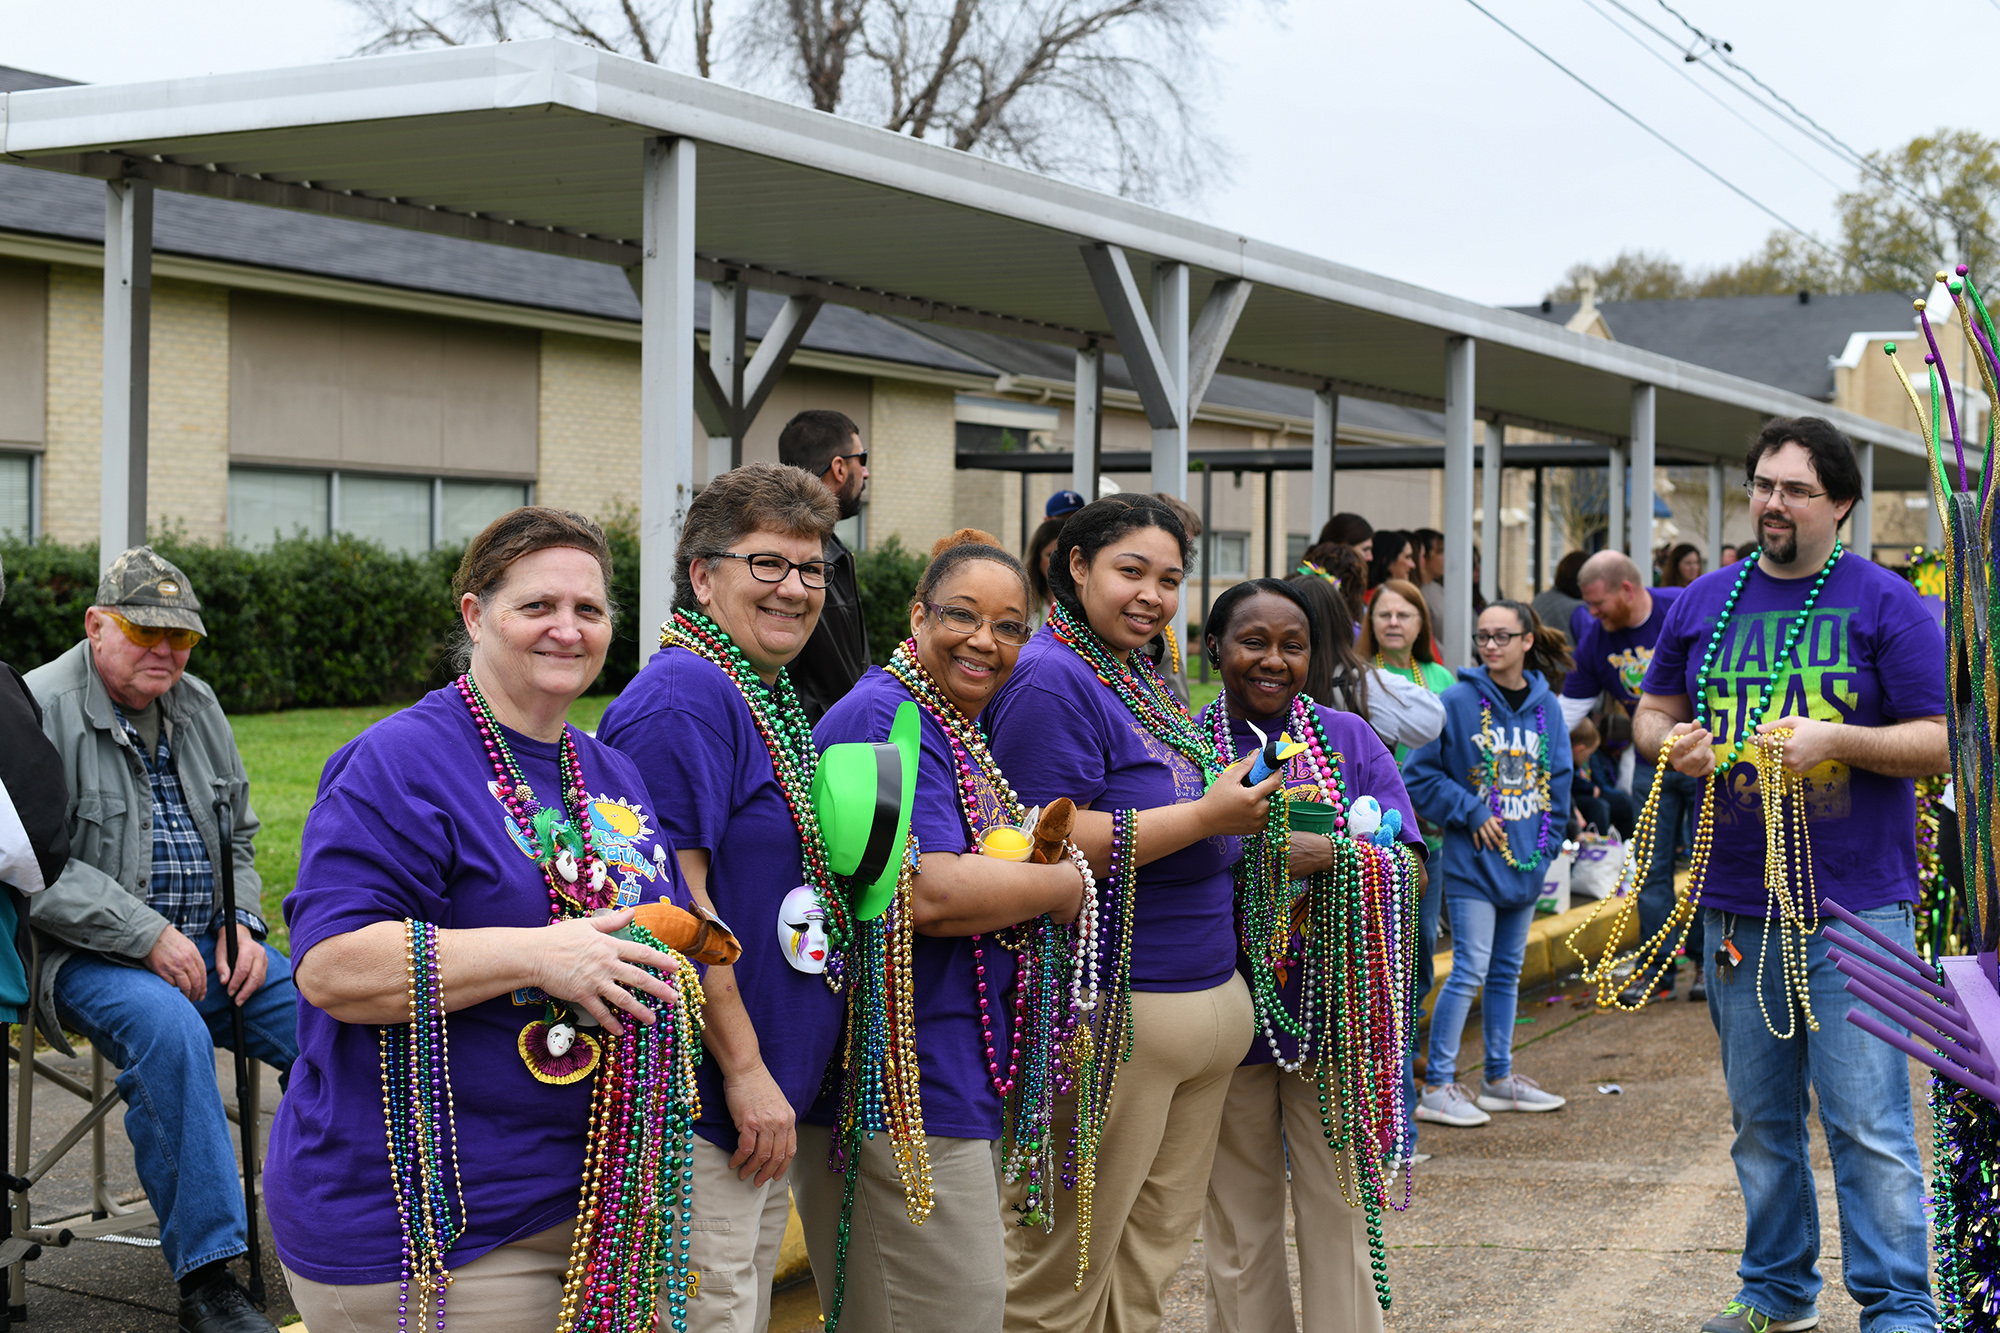 Our Lady of Prompt Succor School in Alexandria held their annual Pre-K Mardi Gras Parade on Mar. 1.  The entire student body, faculty and parents line up to catch beads and trinkets as the Pre-K classes parade down 21st Street in front of the school. Also participating were the Penny Kings, Queen, Prince, and Princess from Fall Festival, and the 2018 ReProm King and Queen. OLPS Staff laissez les bons temps rouler!